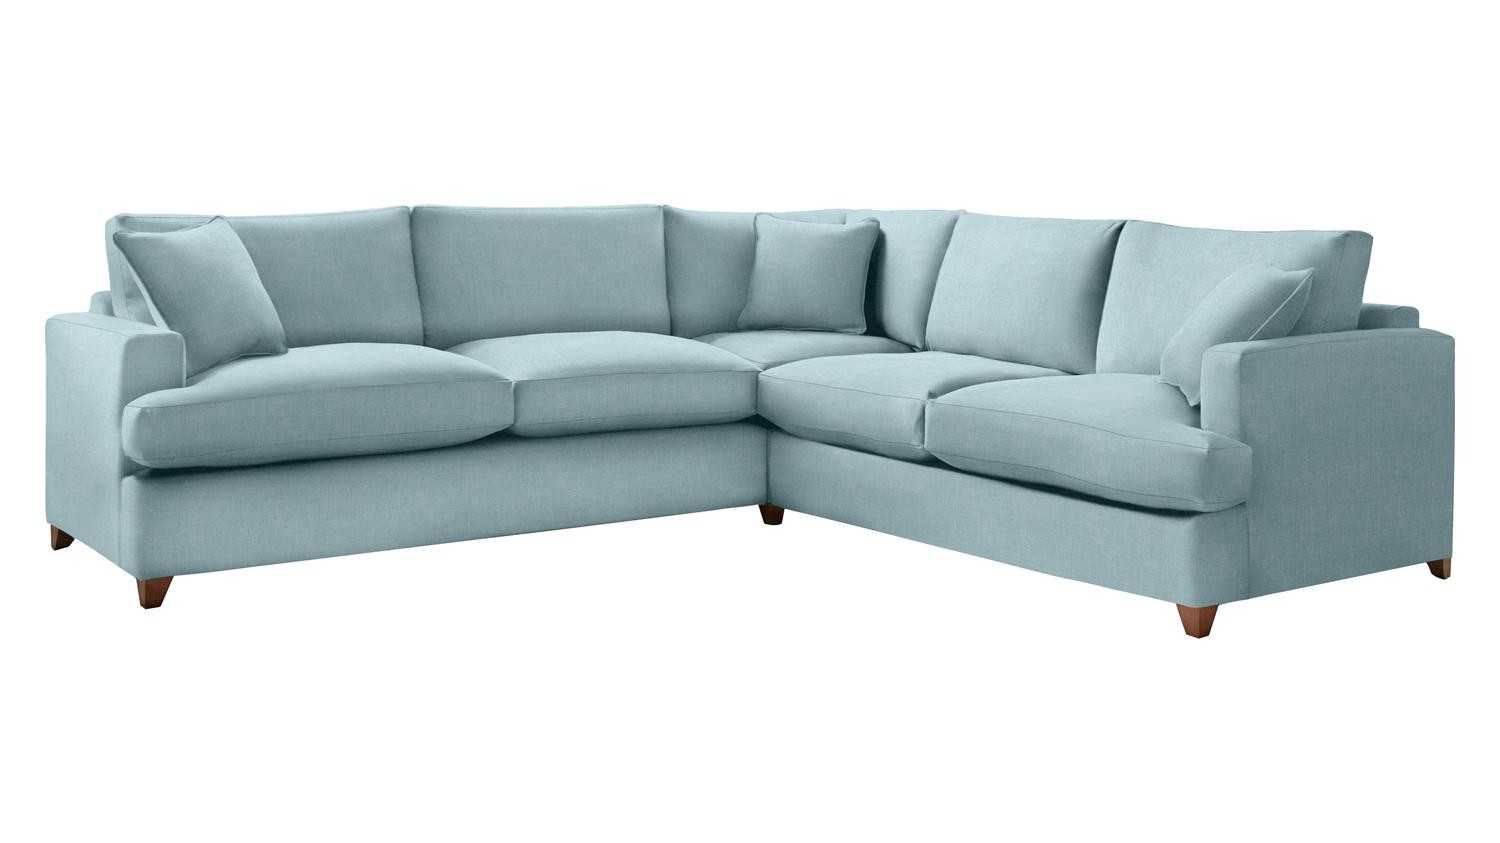 The Fyfield 9 Seater Corner Sofa Bed